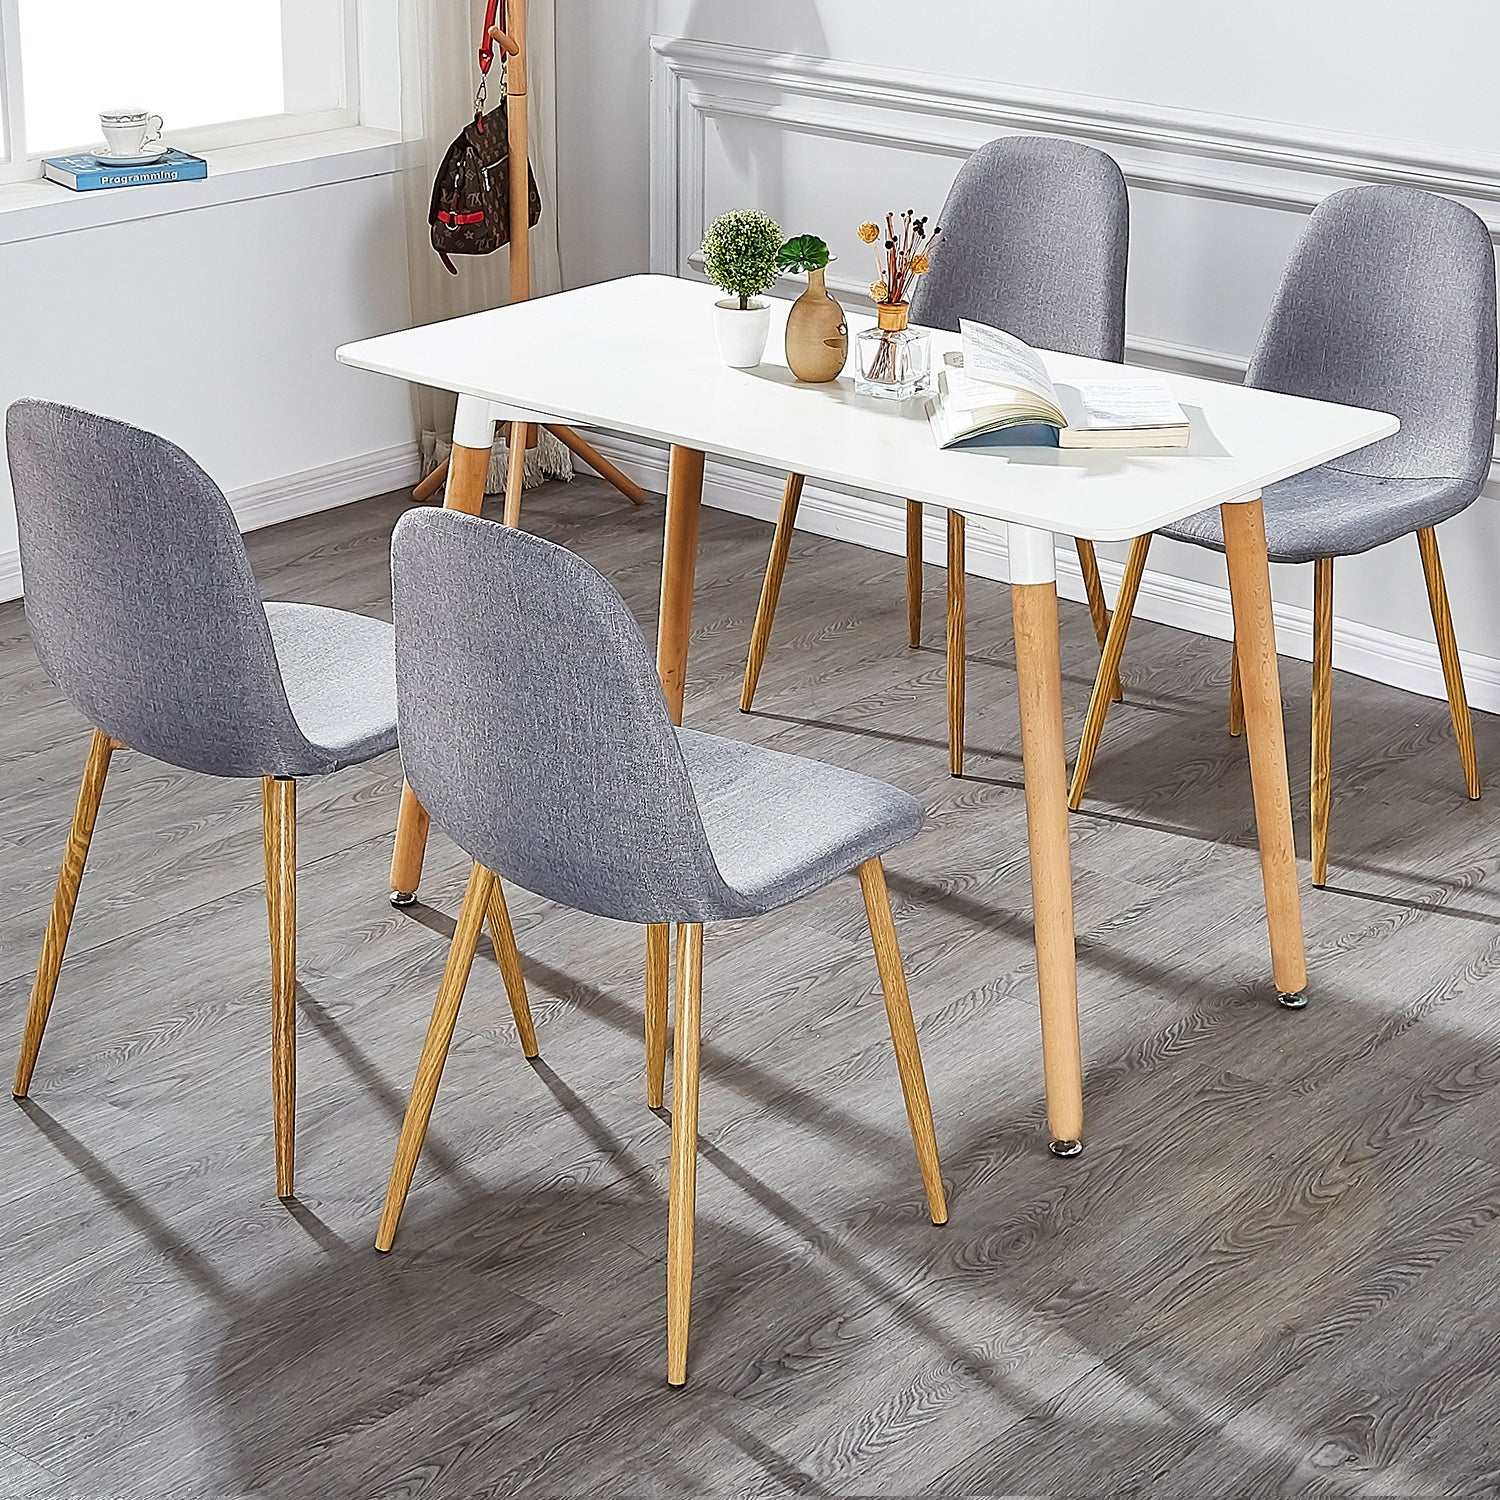 Vecelo Kitchen Dining Chairs Sets Fabric Cushion Seat Back Set Of 4 Overstock 14125107